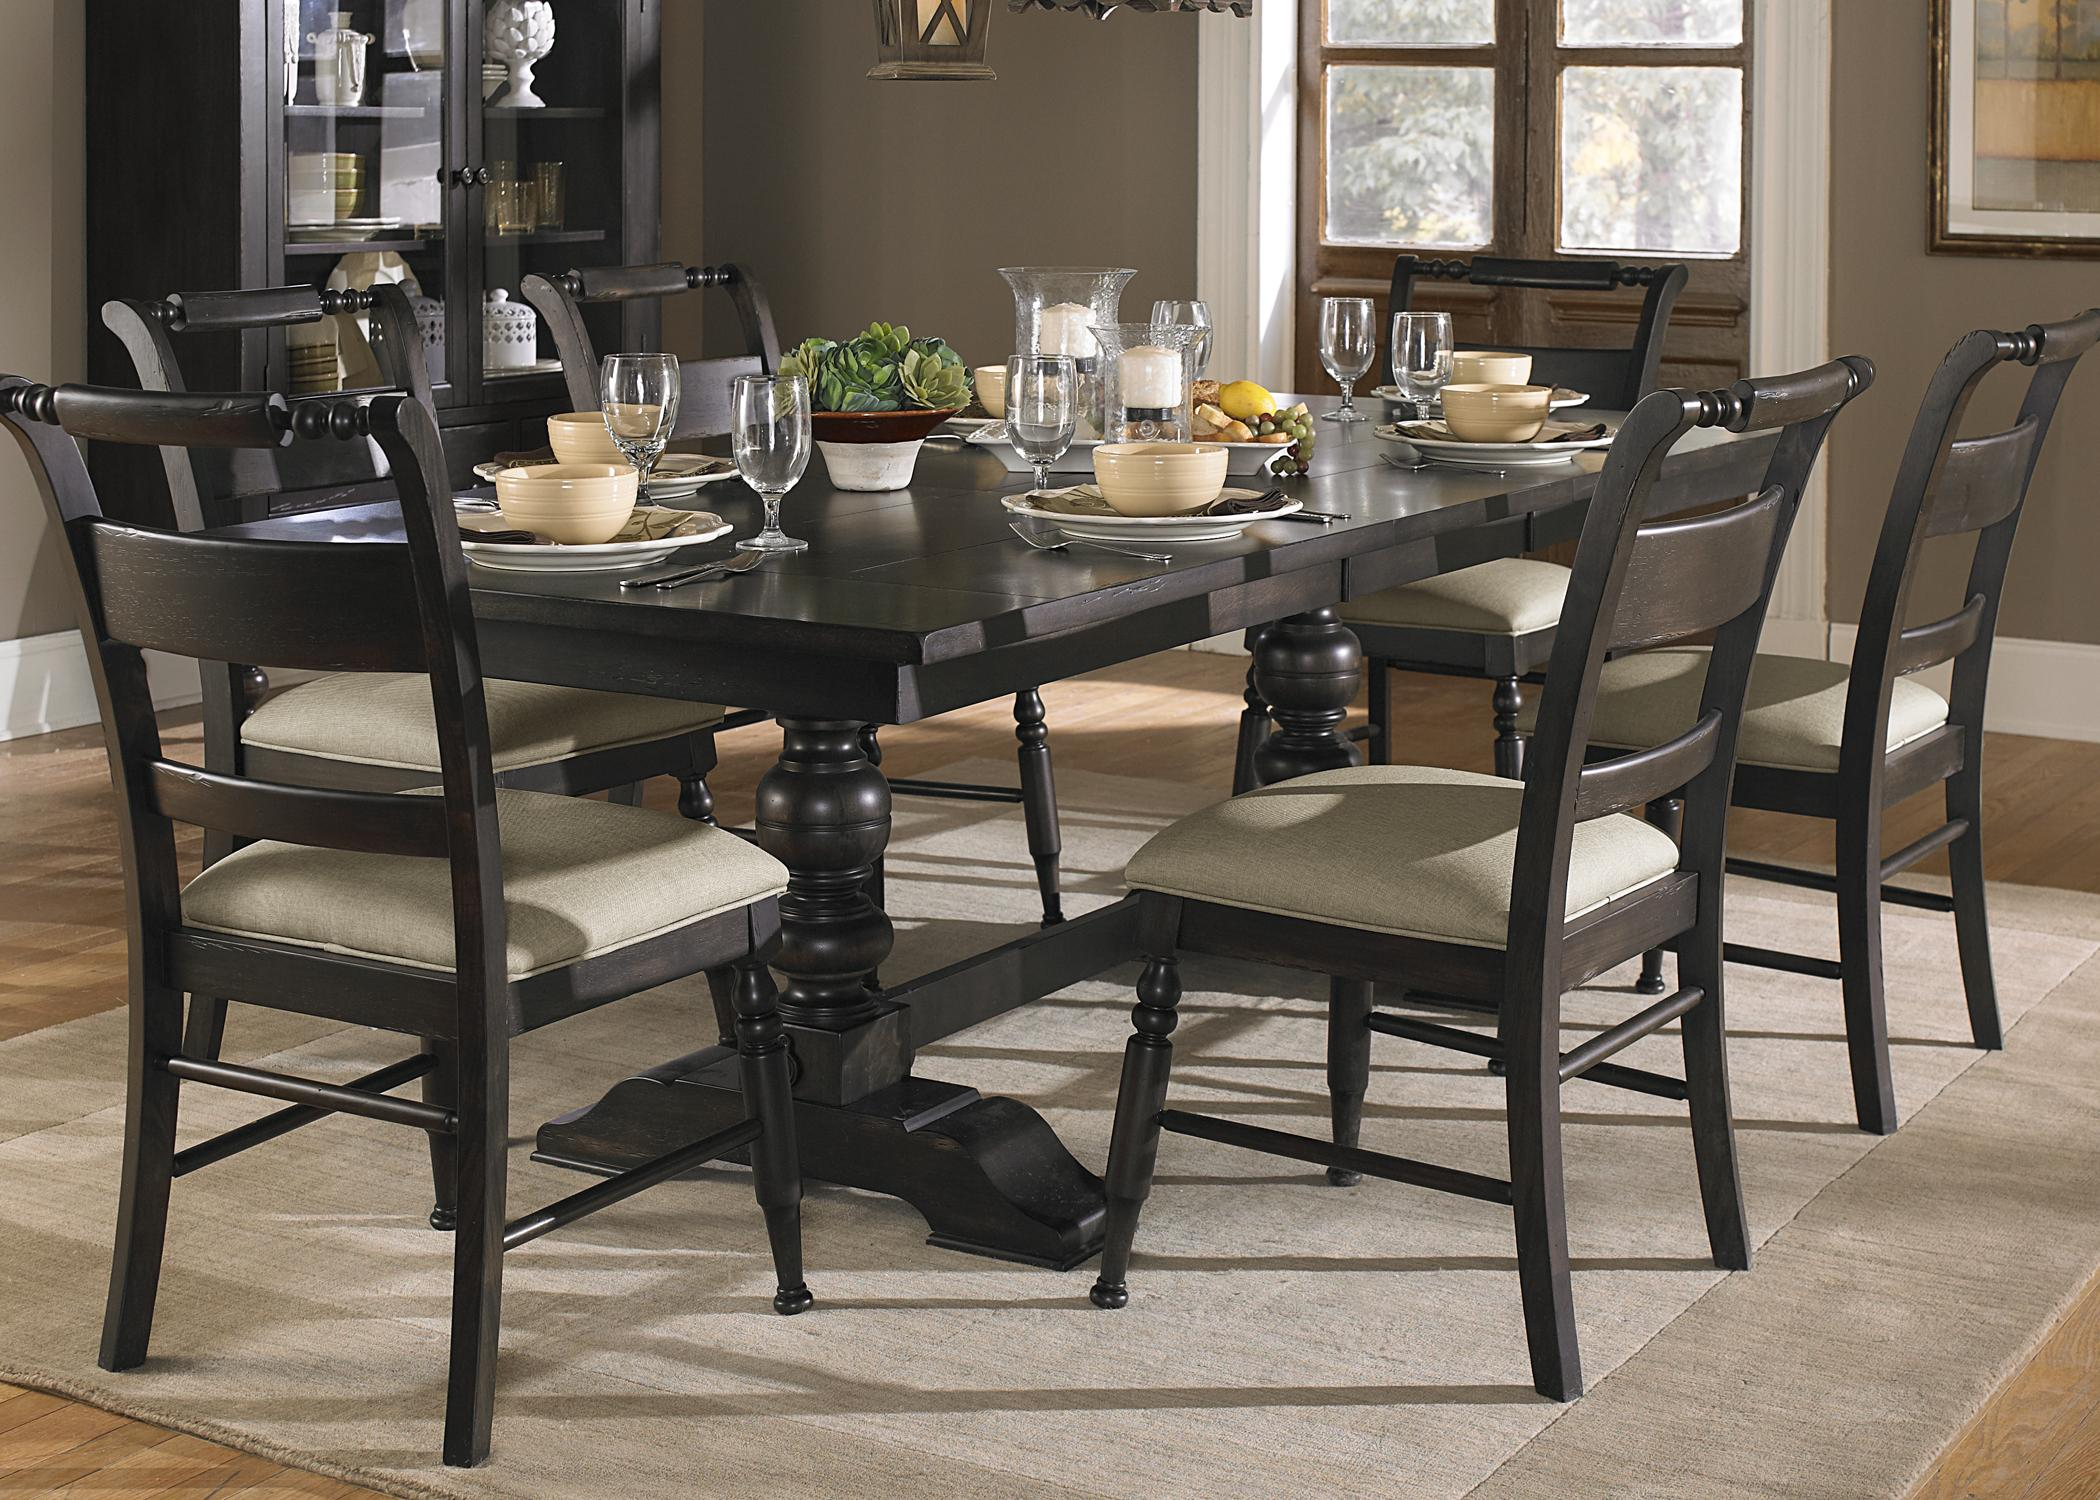 7 Piece Trestle Dining Room Table Set by Liberty Furniture  Wolf